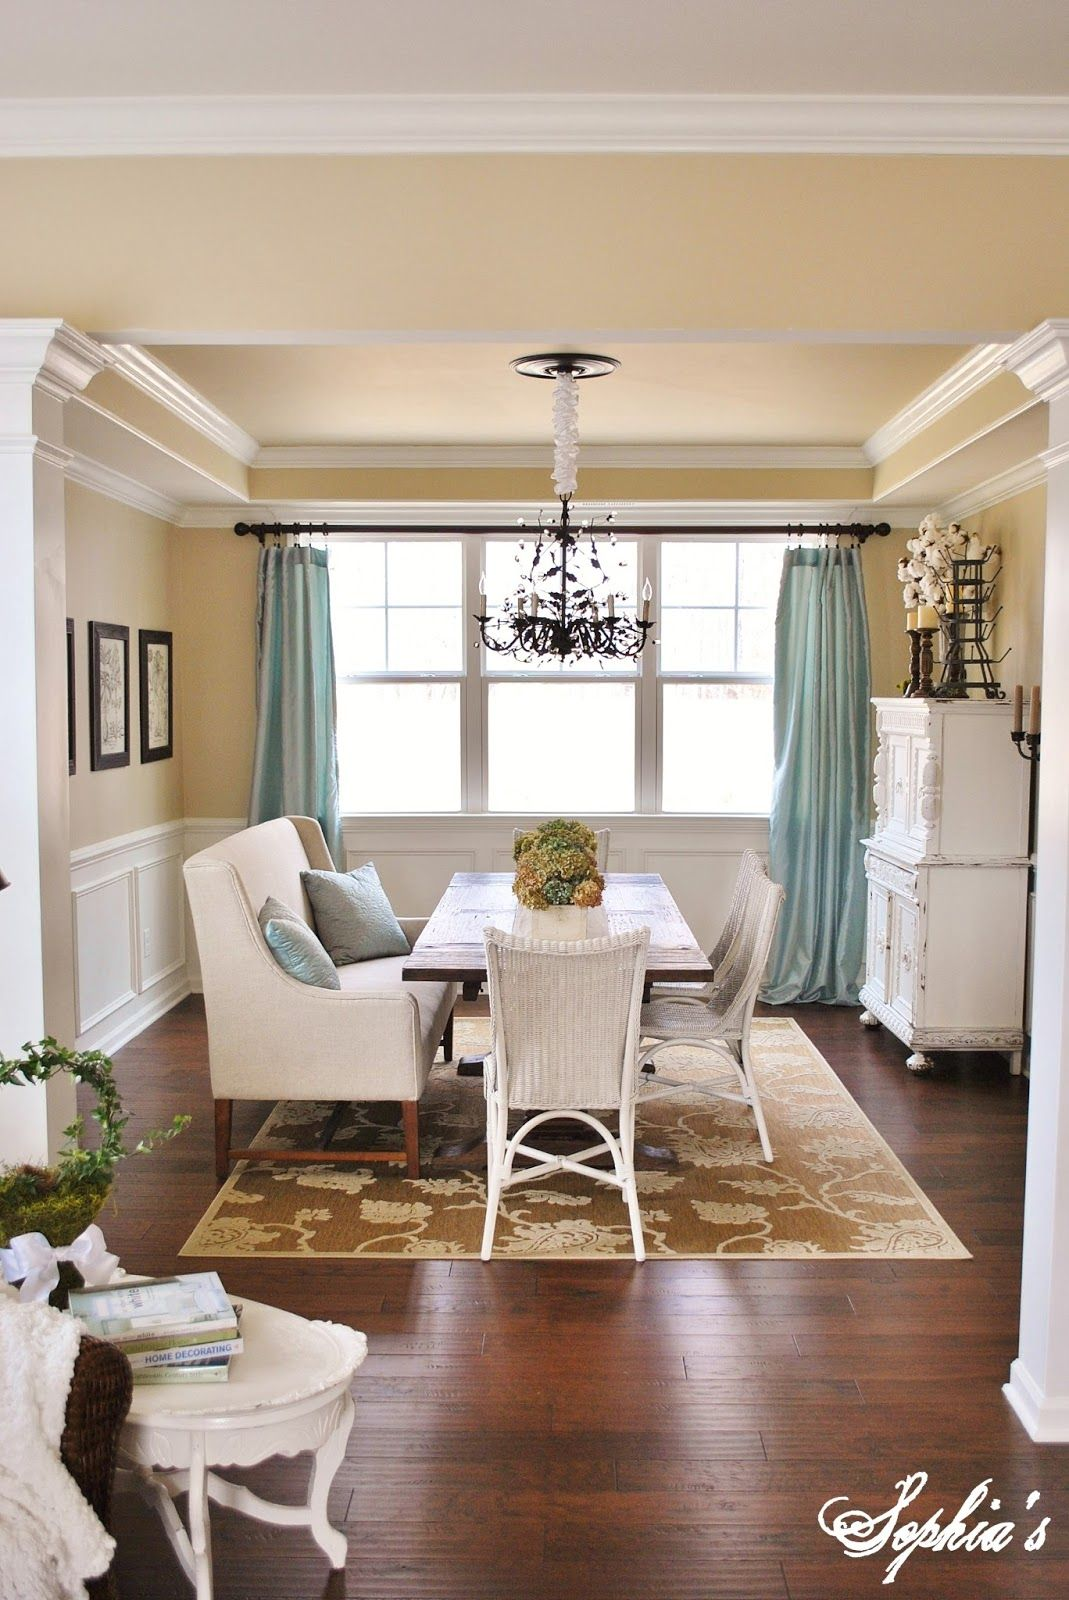 Sophia's: Living Room - Dining Room Tour and Q blue curtains